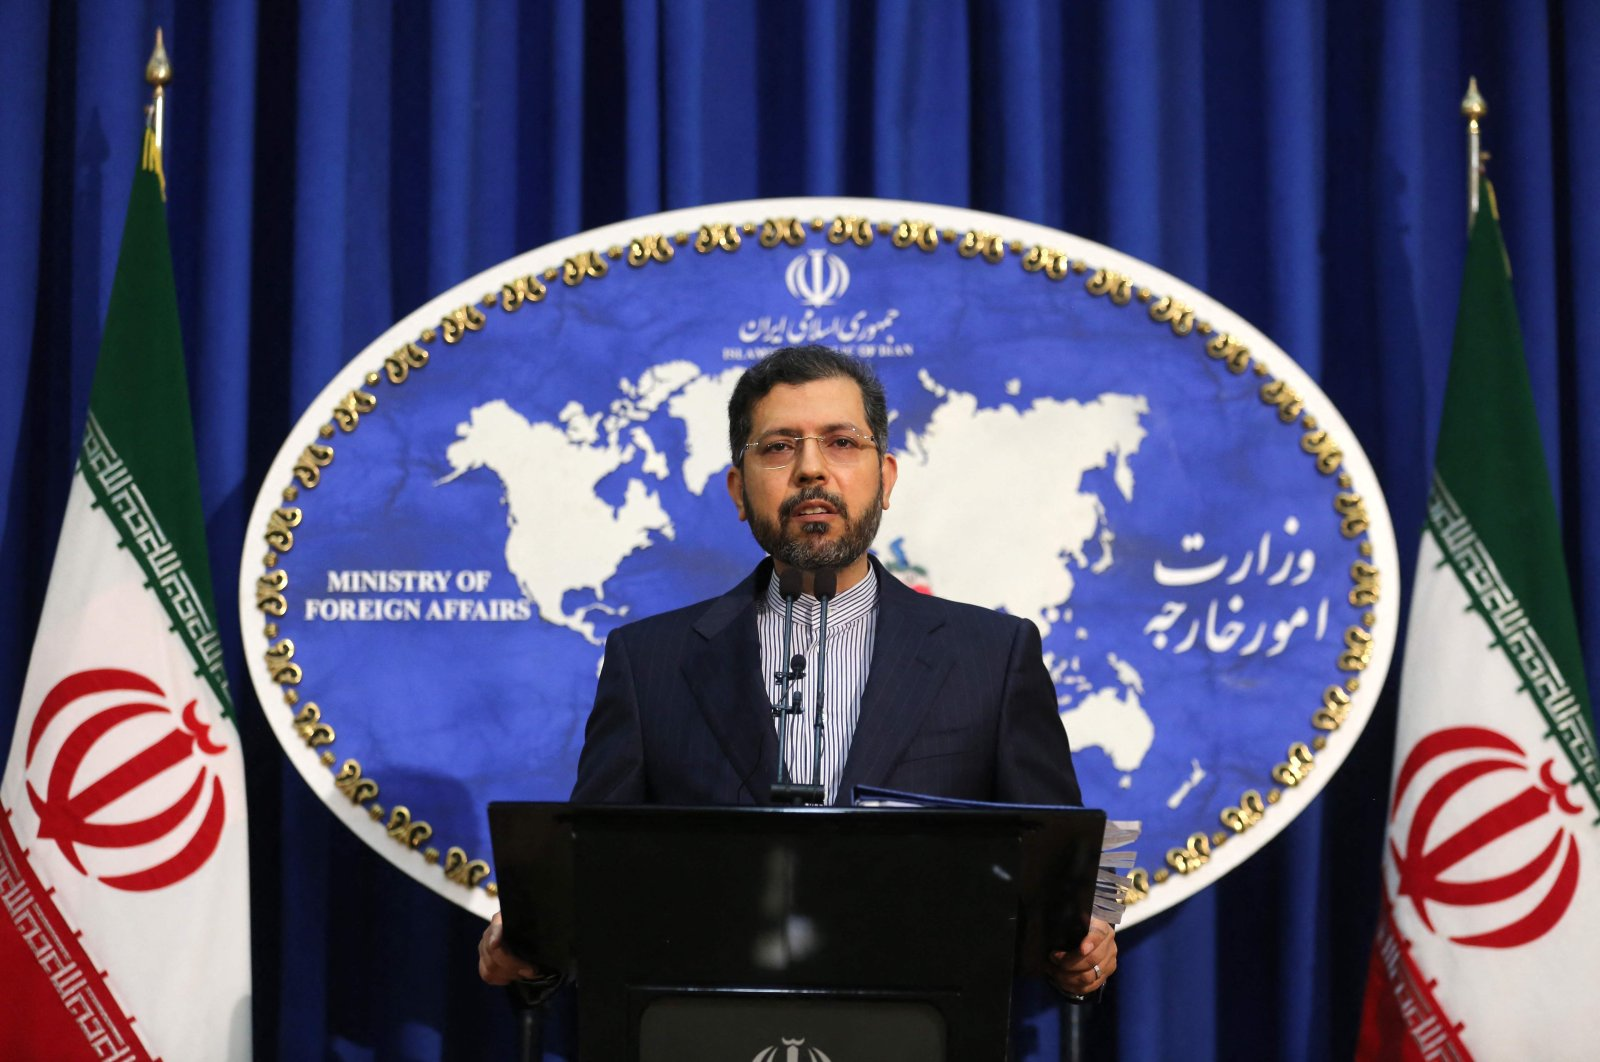 Iranian foreign ministry spokesman Saied Khatibzadeh speaks during a press conference in Tehran on Feb. 22, 2021. (AFP File Photo)